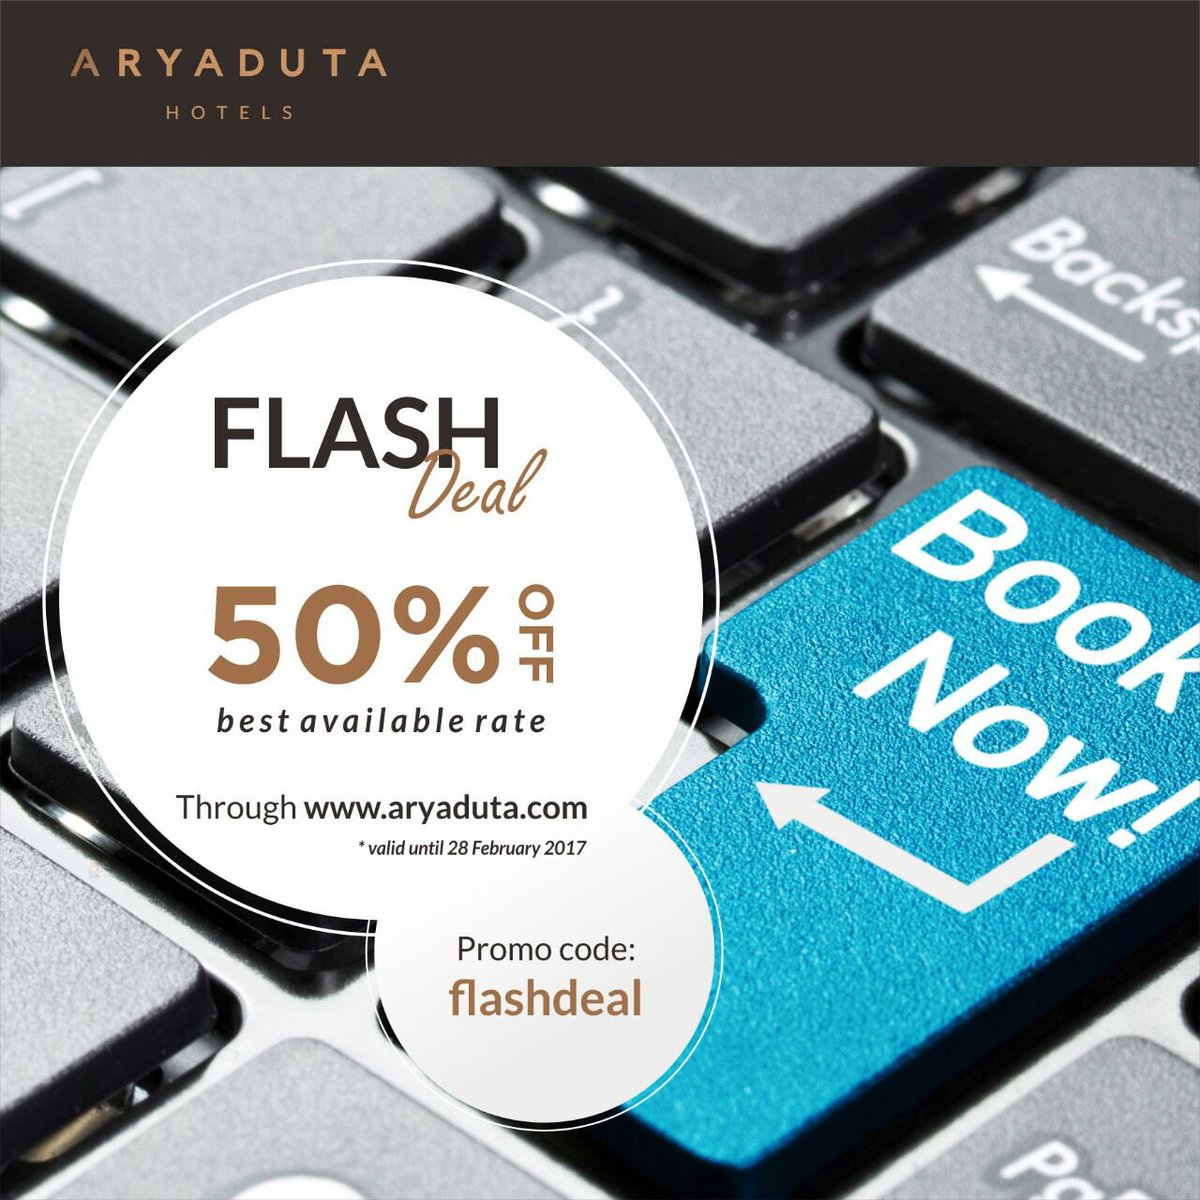 Aryaduta Hotels Flash Deal! Get 50% off your room rate by booking through the Aryaduta website from 6pm onwards for same day stay. https://t.co/Zbx6TZQiuD